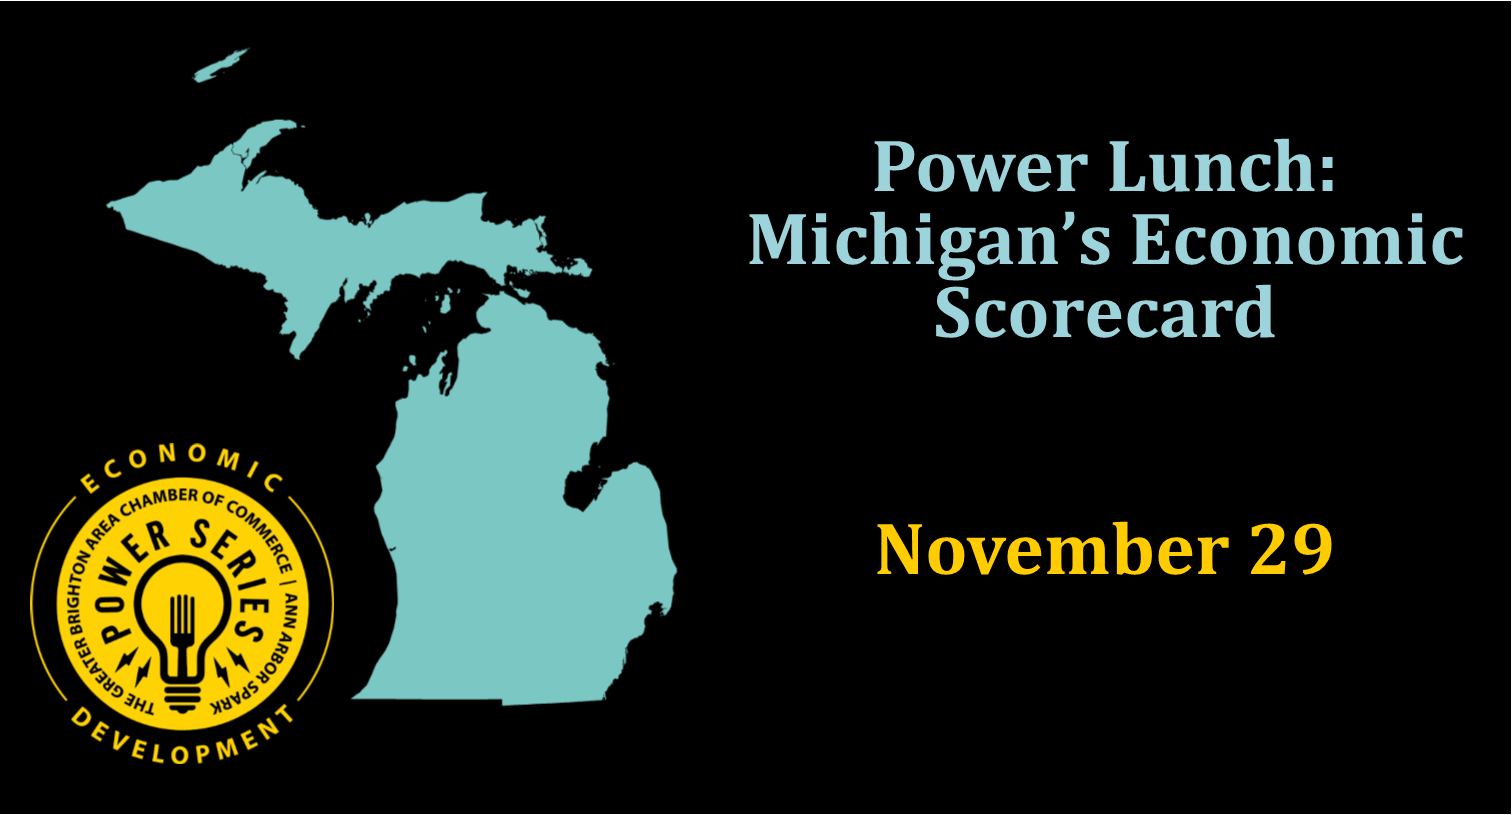 Power-Lunch-Graphic-11.18.png